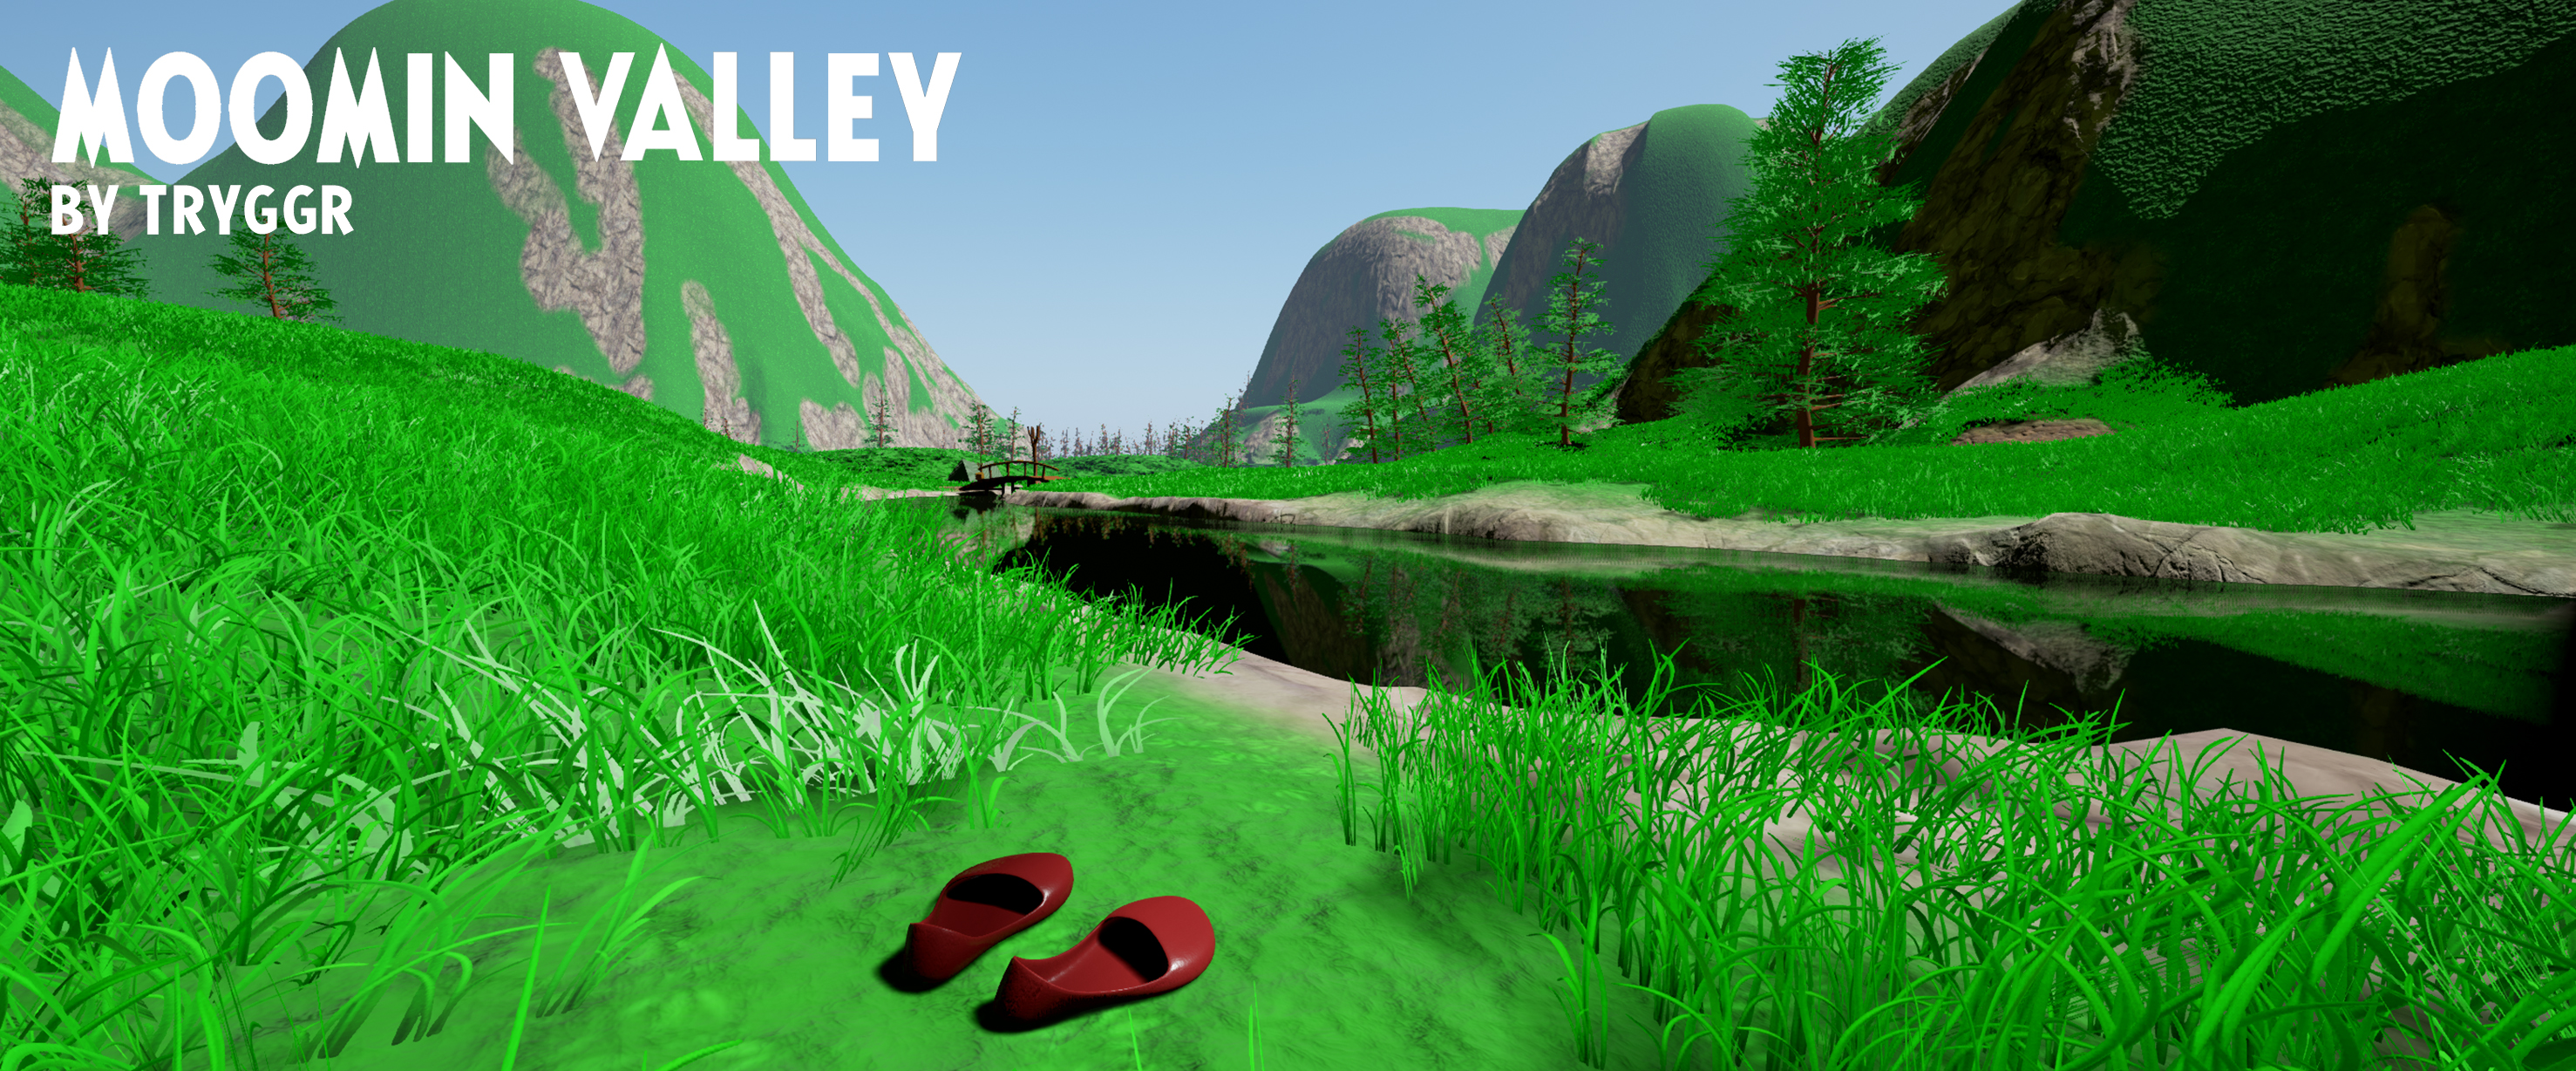 MOOMINVALLEY_SHOES_L